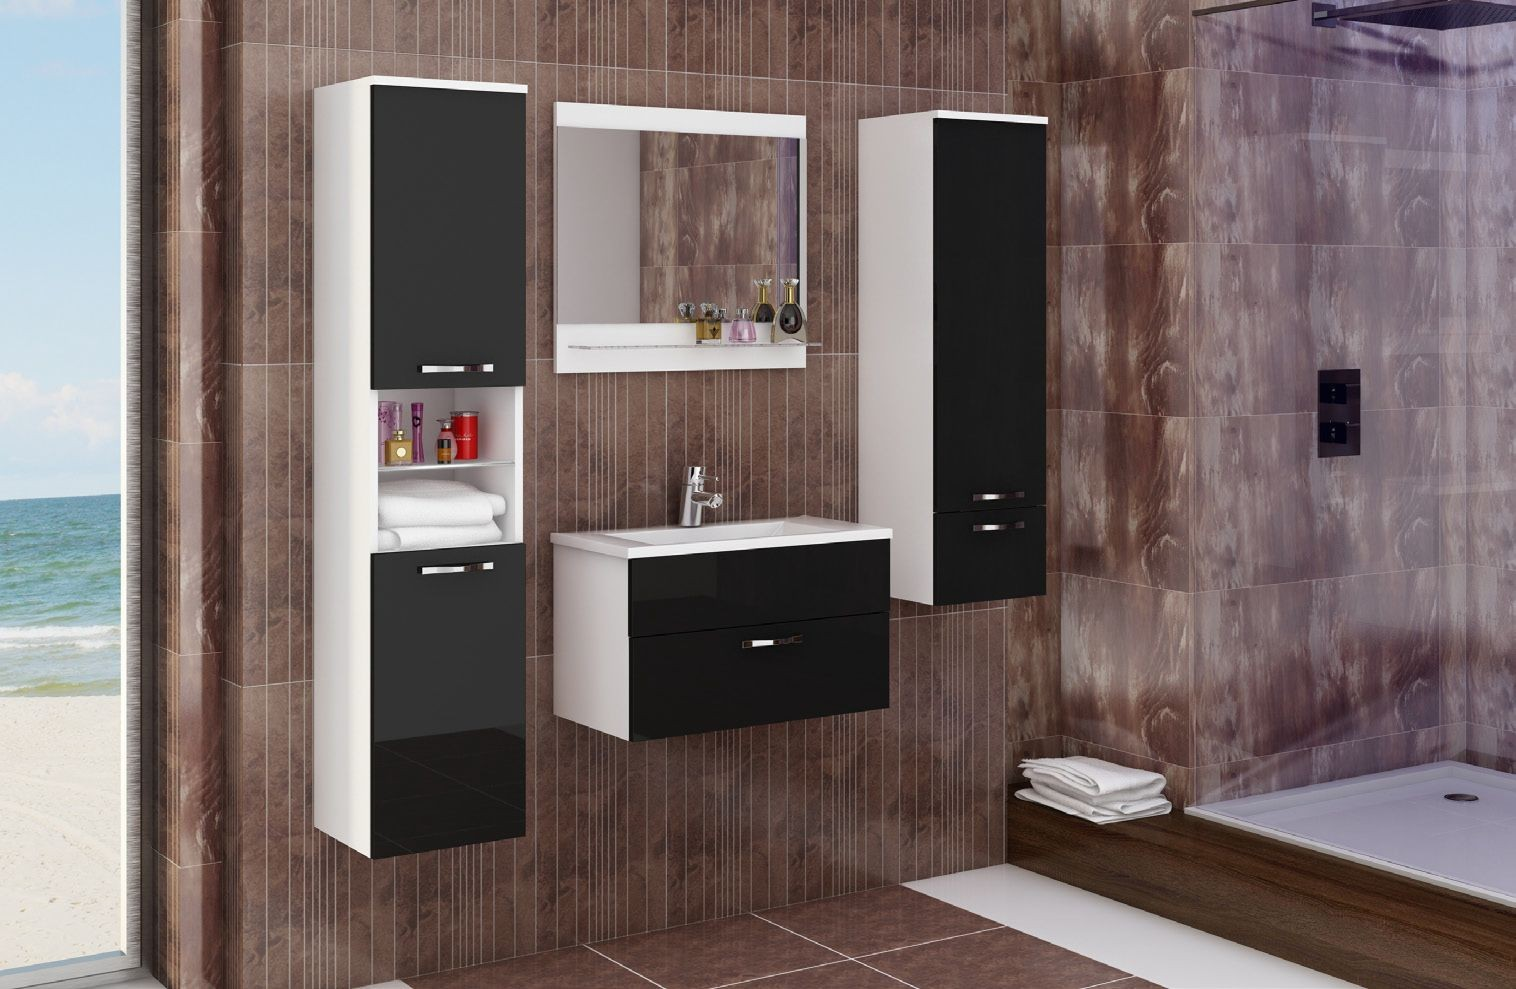 badm bel komplett 6 teilig hochglanz schwarz 51004. Black Bedroom Furniture Sets. Home Design Ideas